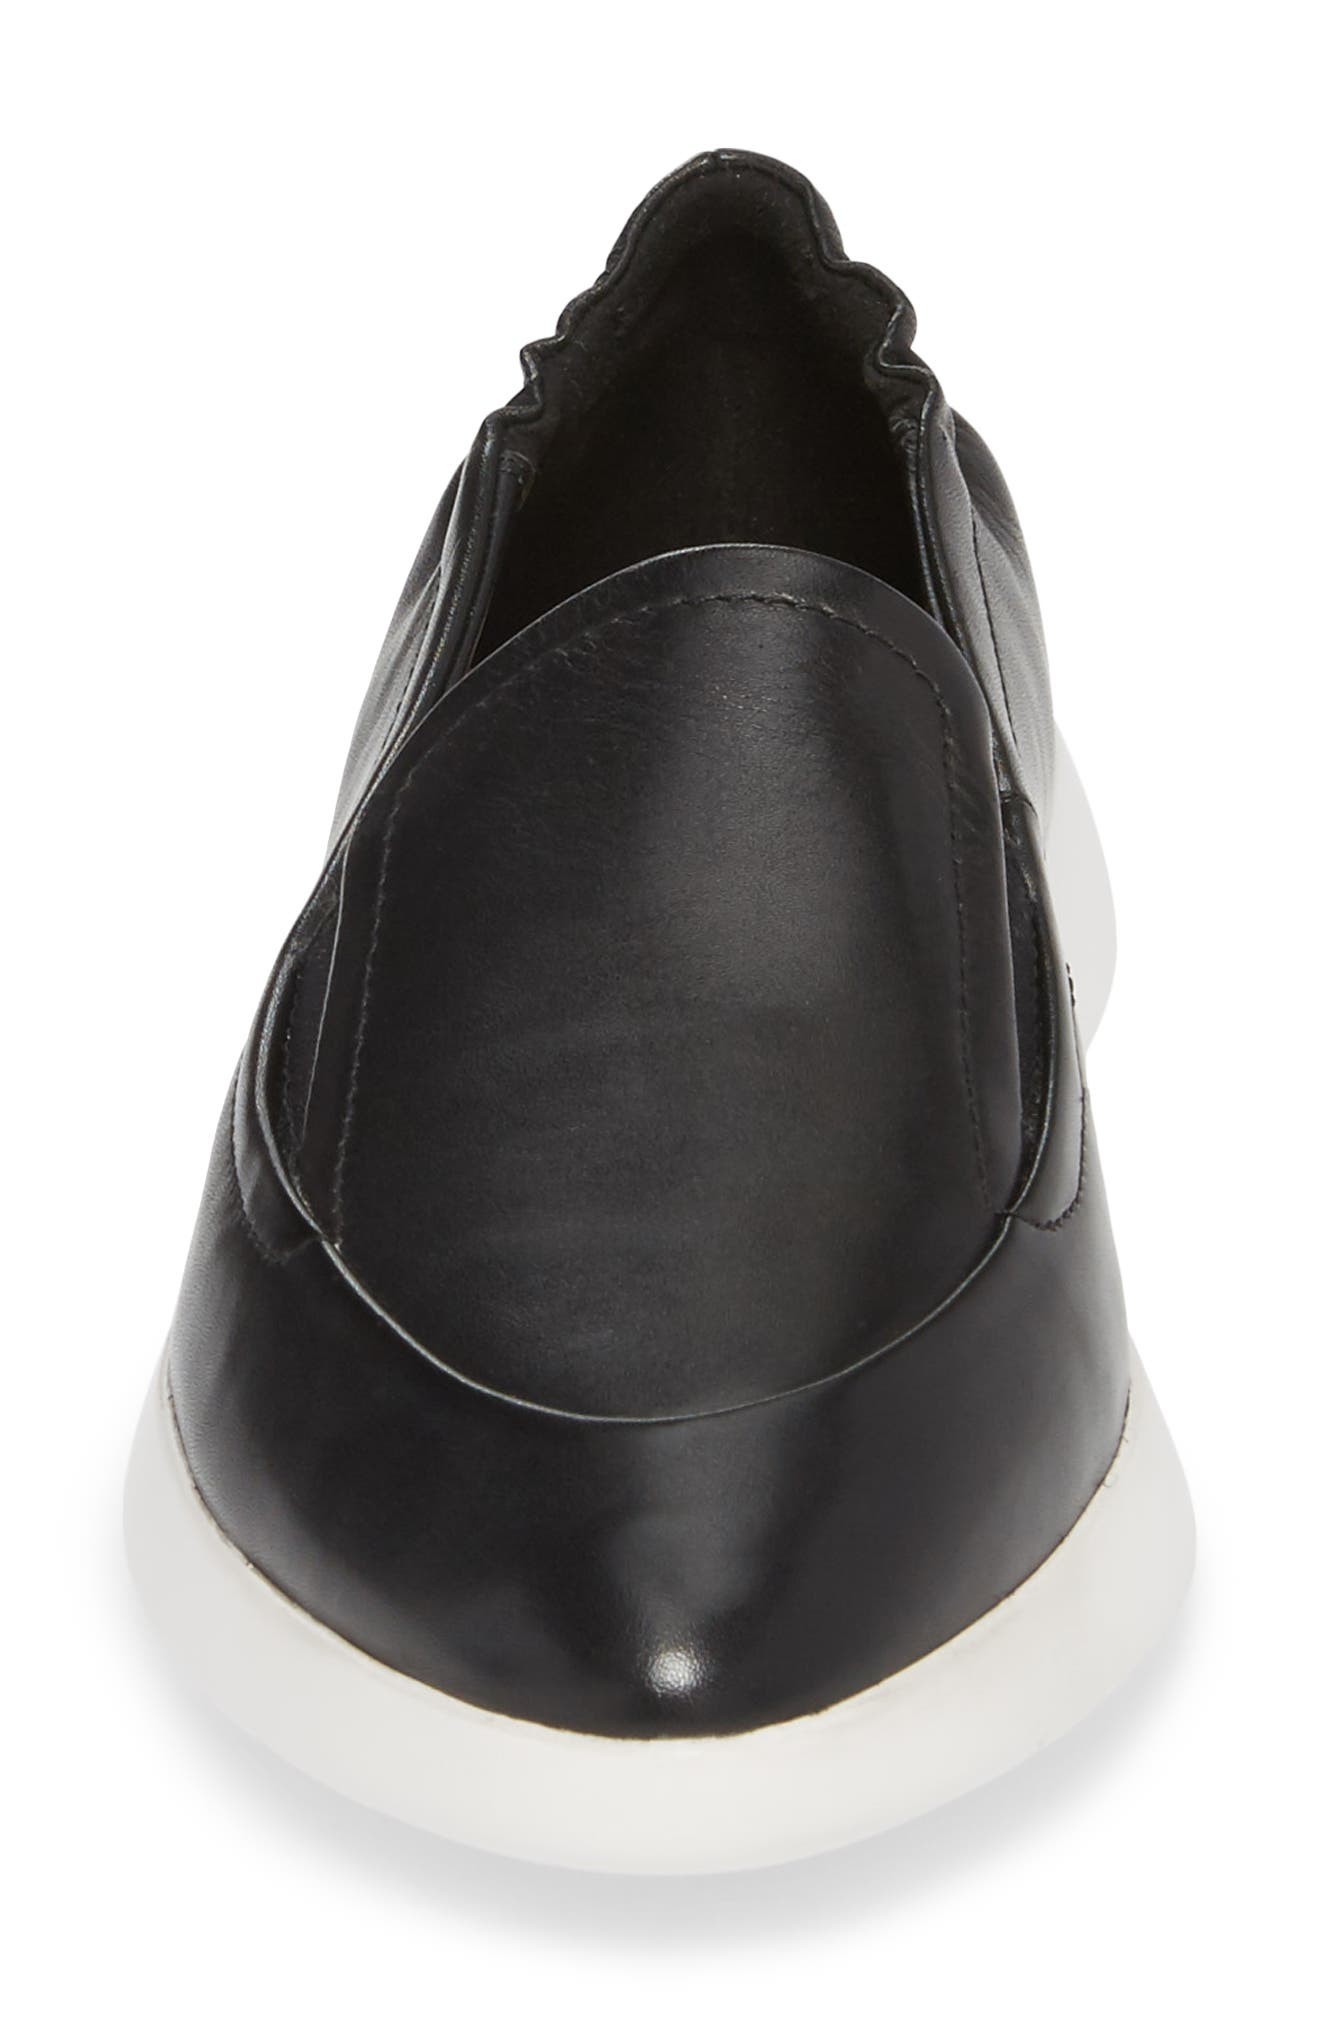 Dana Loafer Sneaker,                             Alternate thumbnail 4, color,                             Black Leather